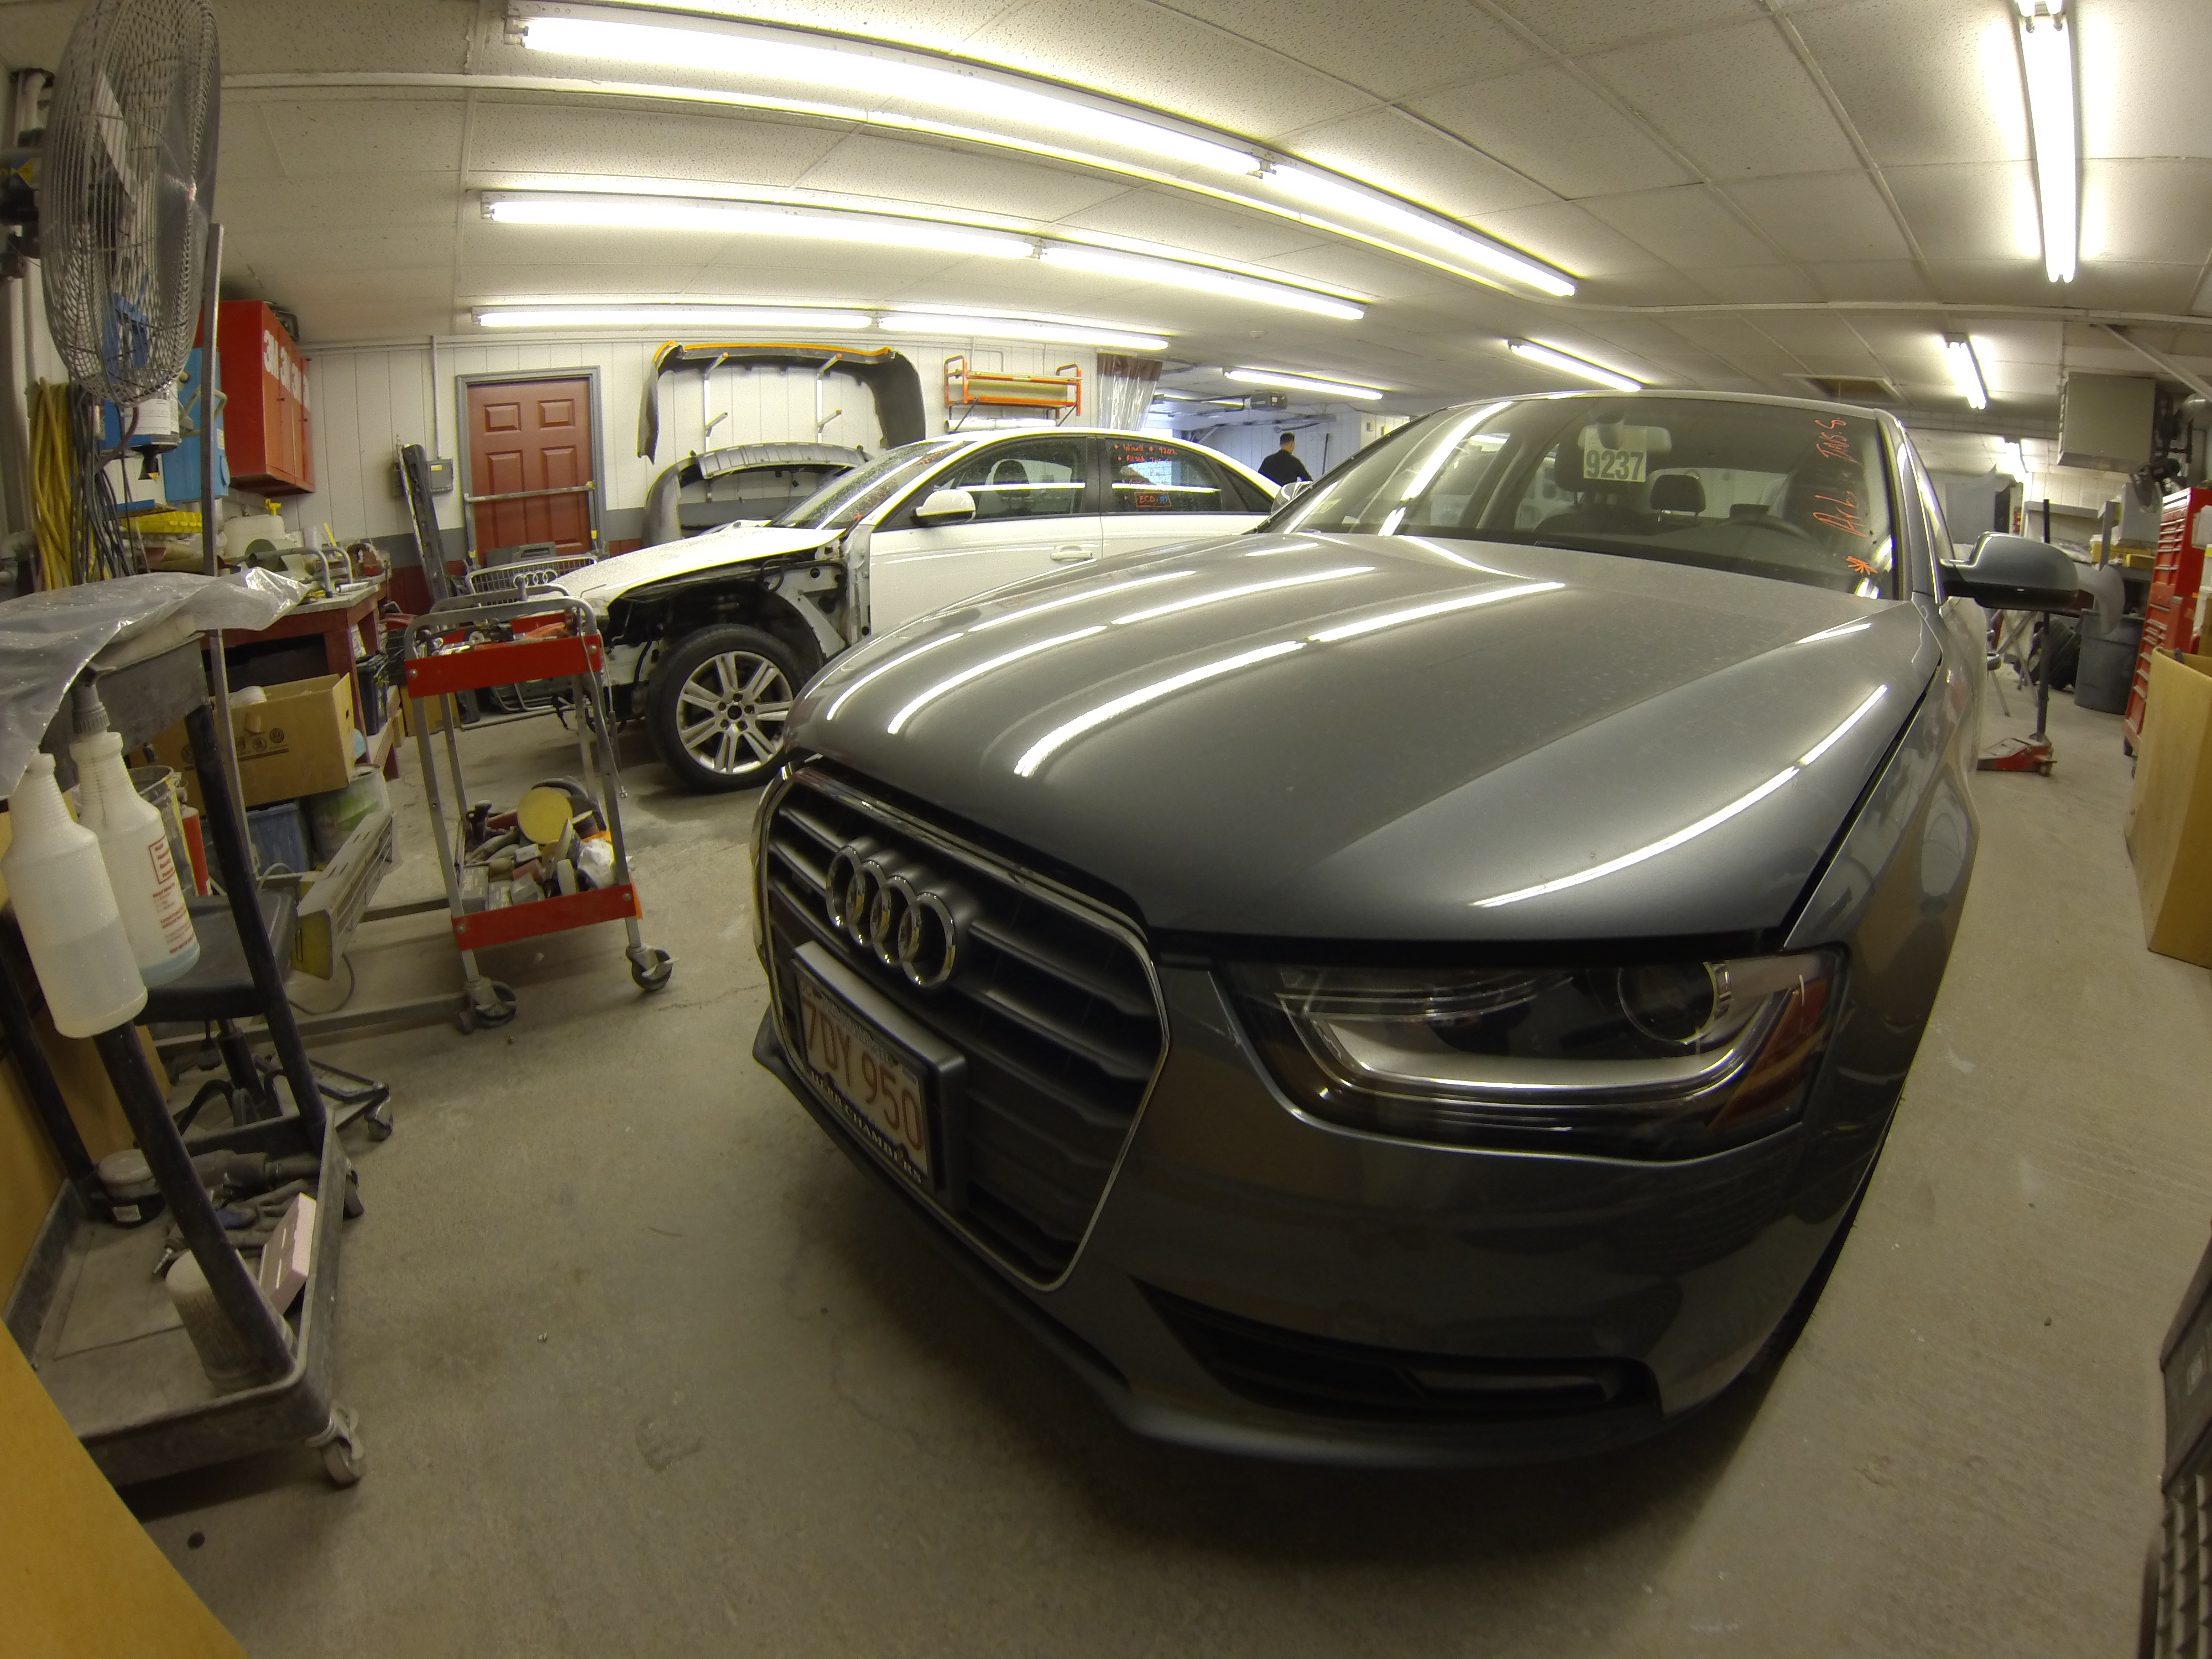 Range Rover Norwood >> Audi Authorized Collision Center & Luxury Car Repair Shop in Boston, MA